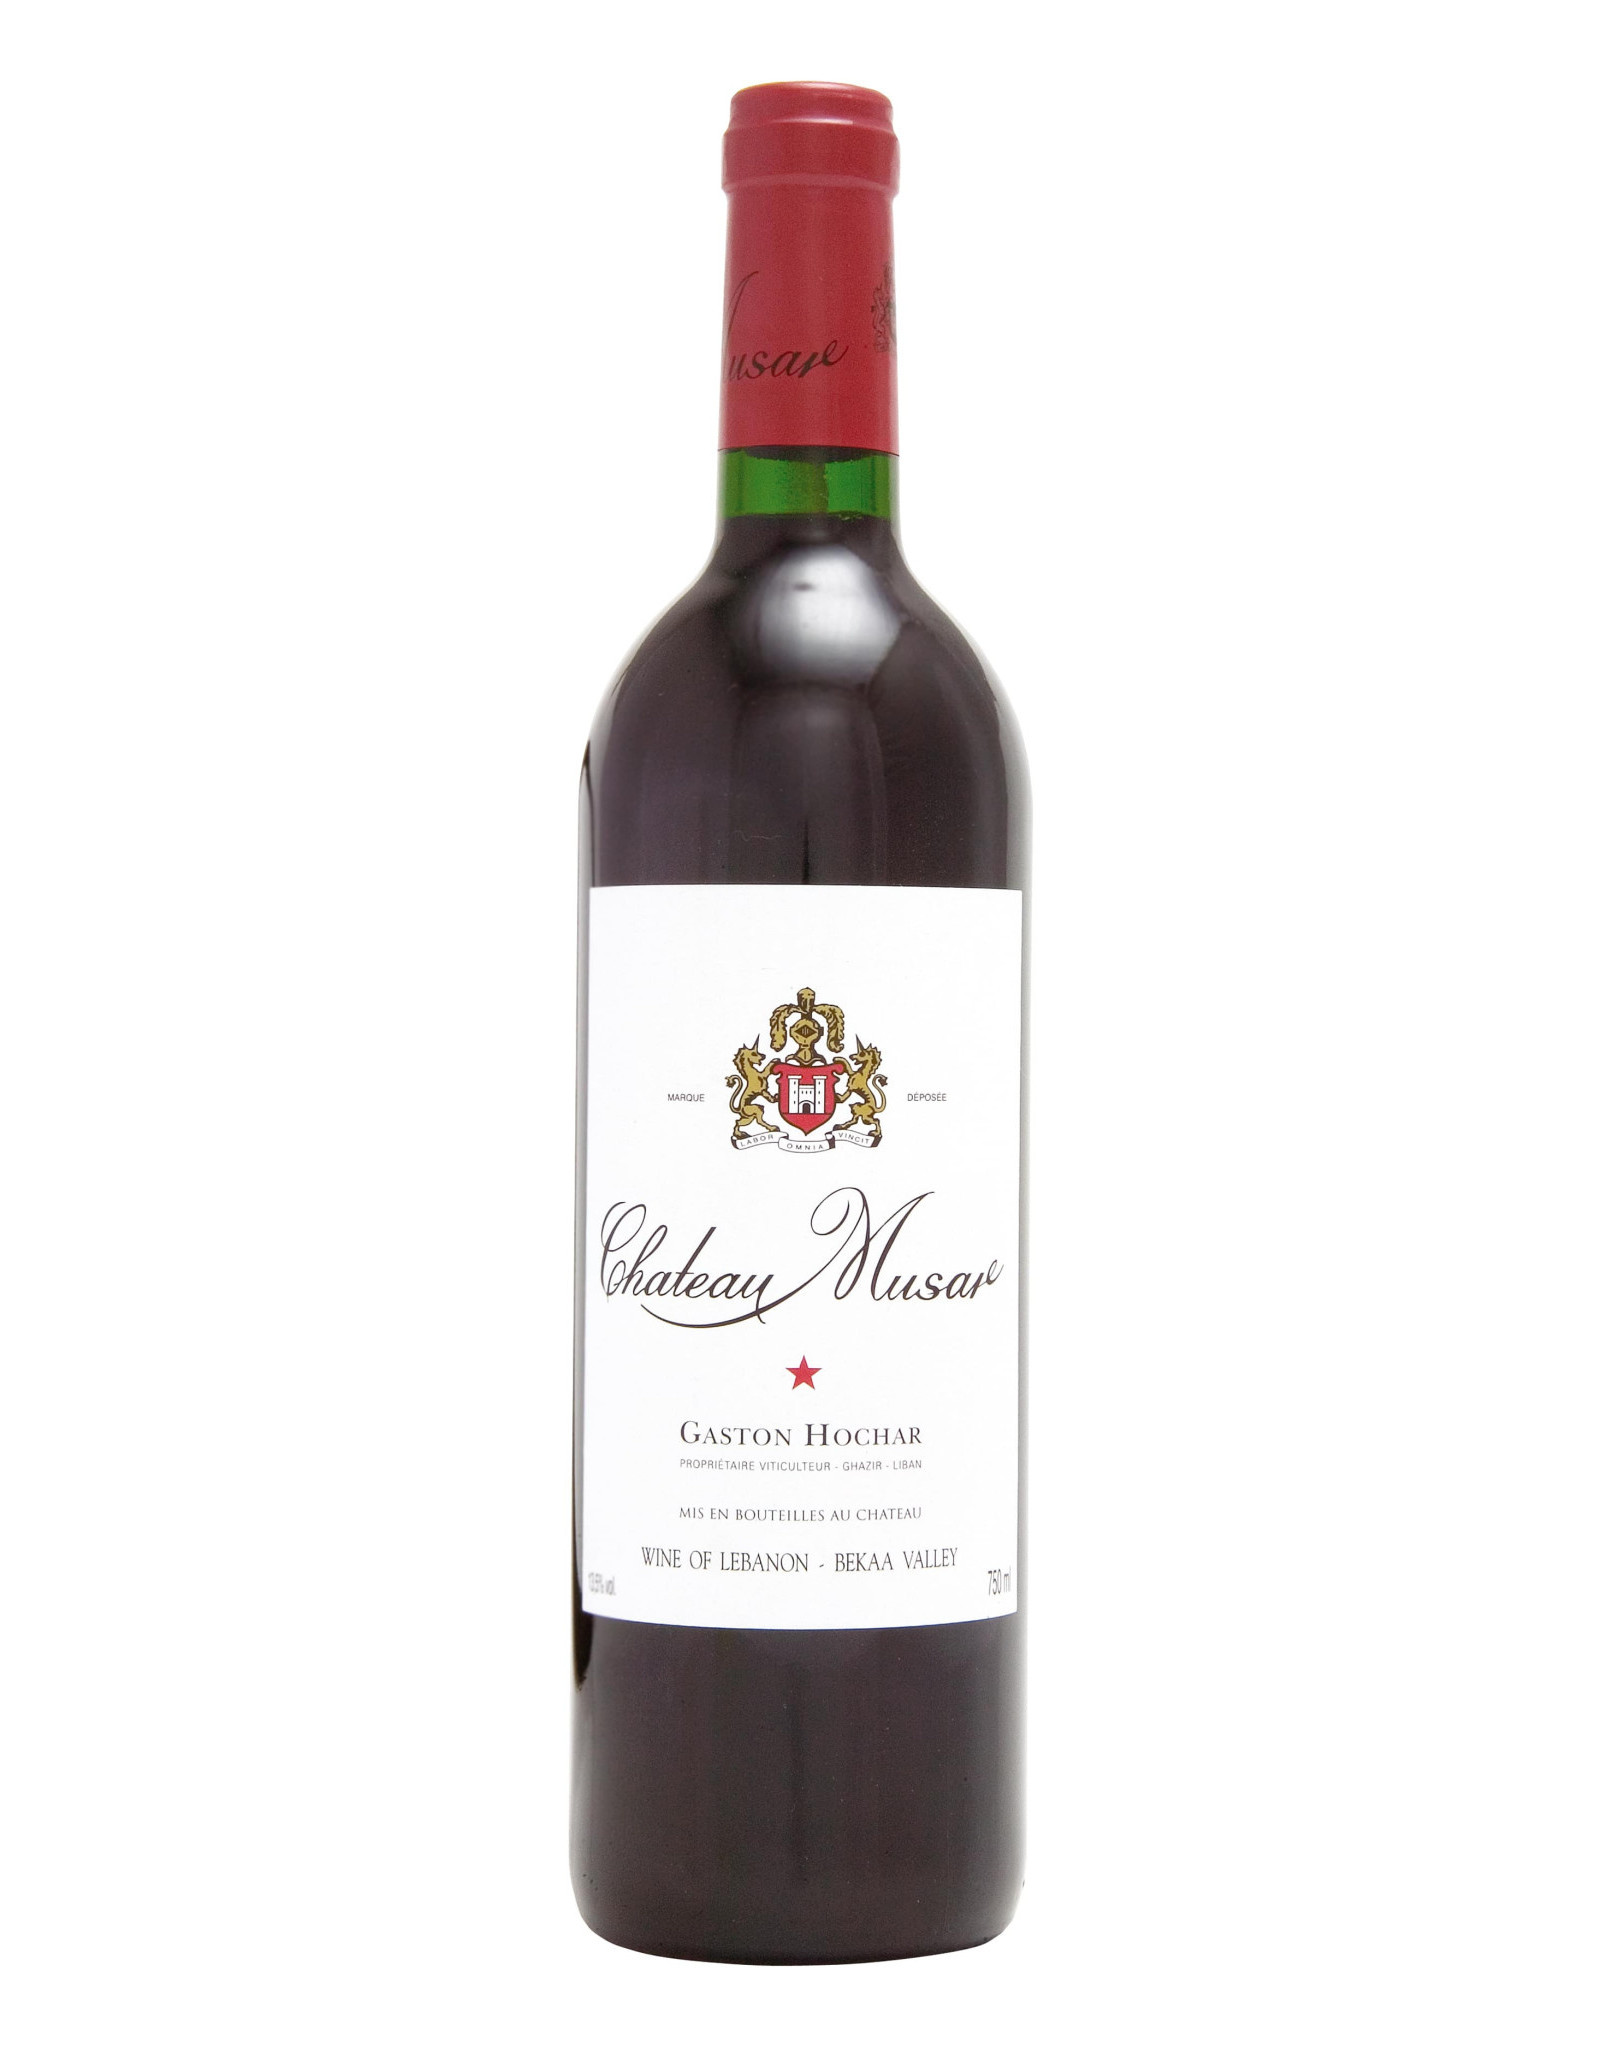 Chateau Musar Chateau Musar 2013